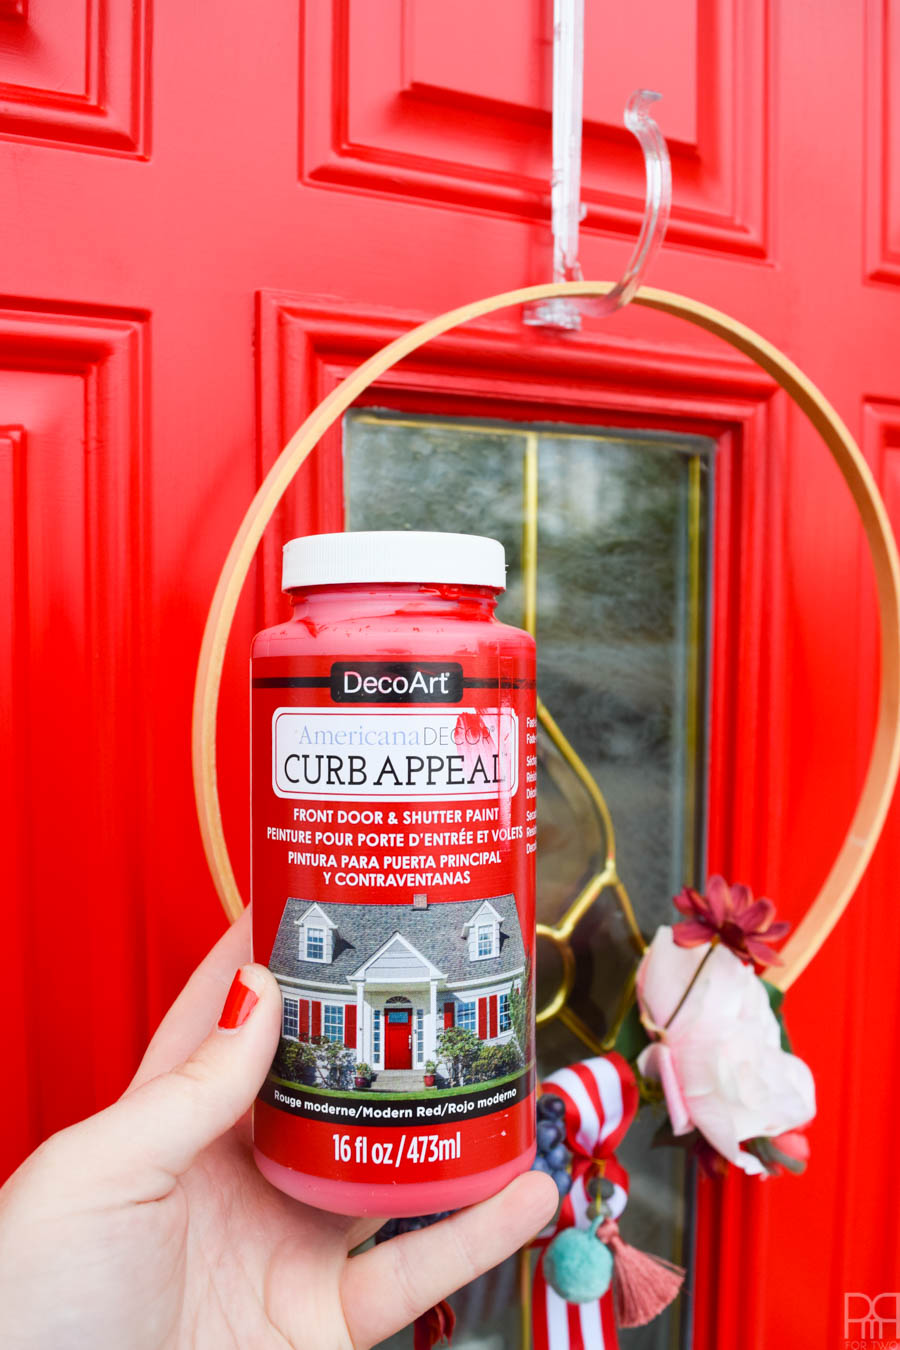 DecoArt Curb Appeal Paint